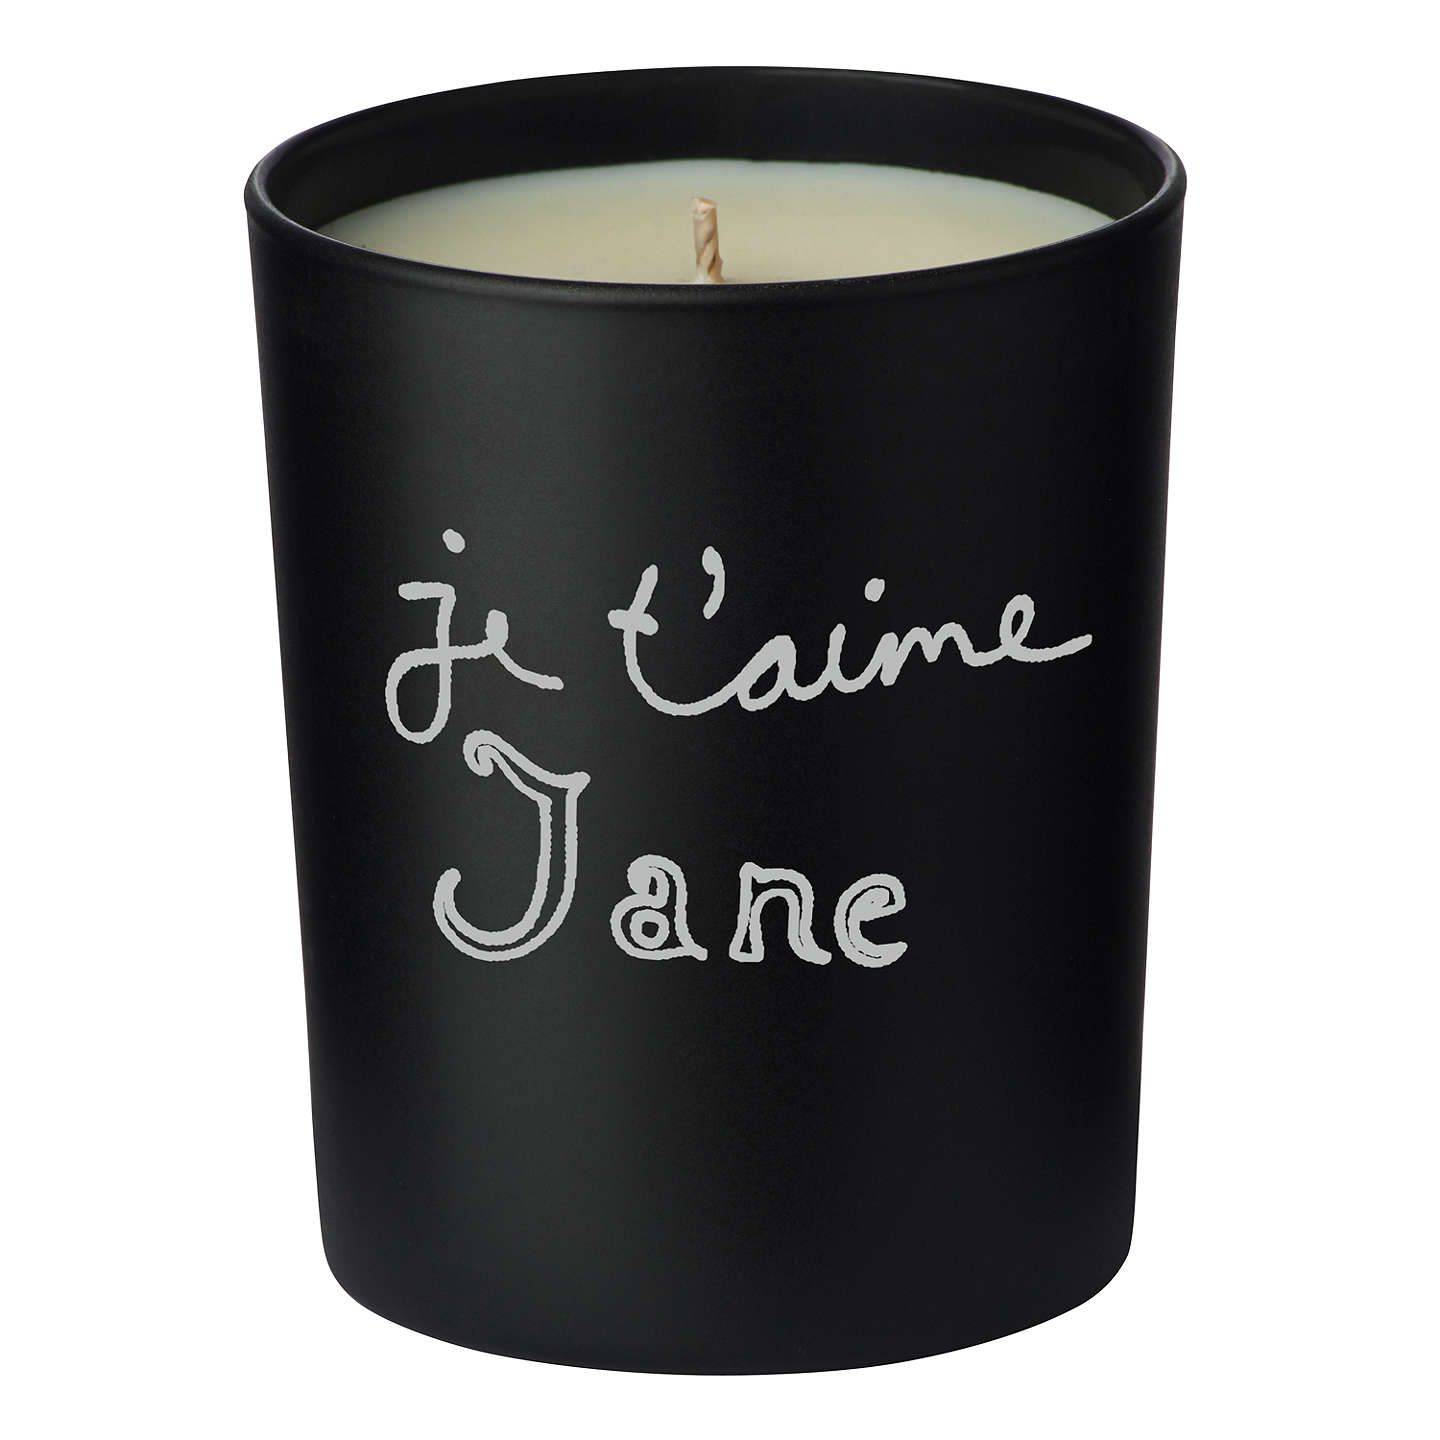 BuyBella Freud Je t'aime Jane Candle, 190g Online at johnlewis.com